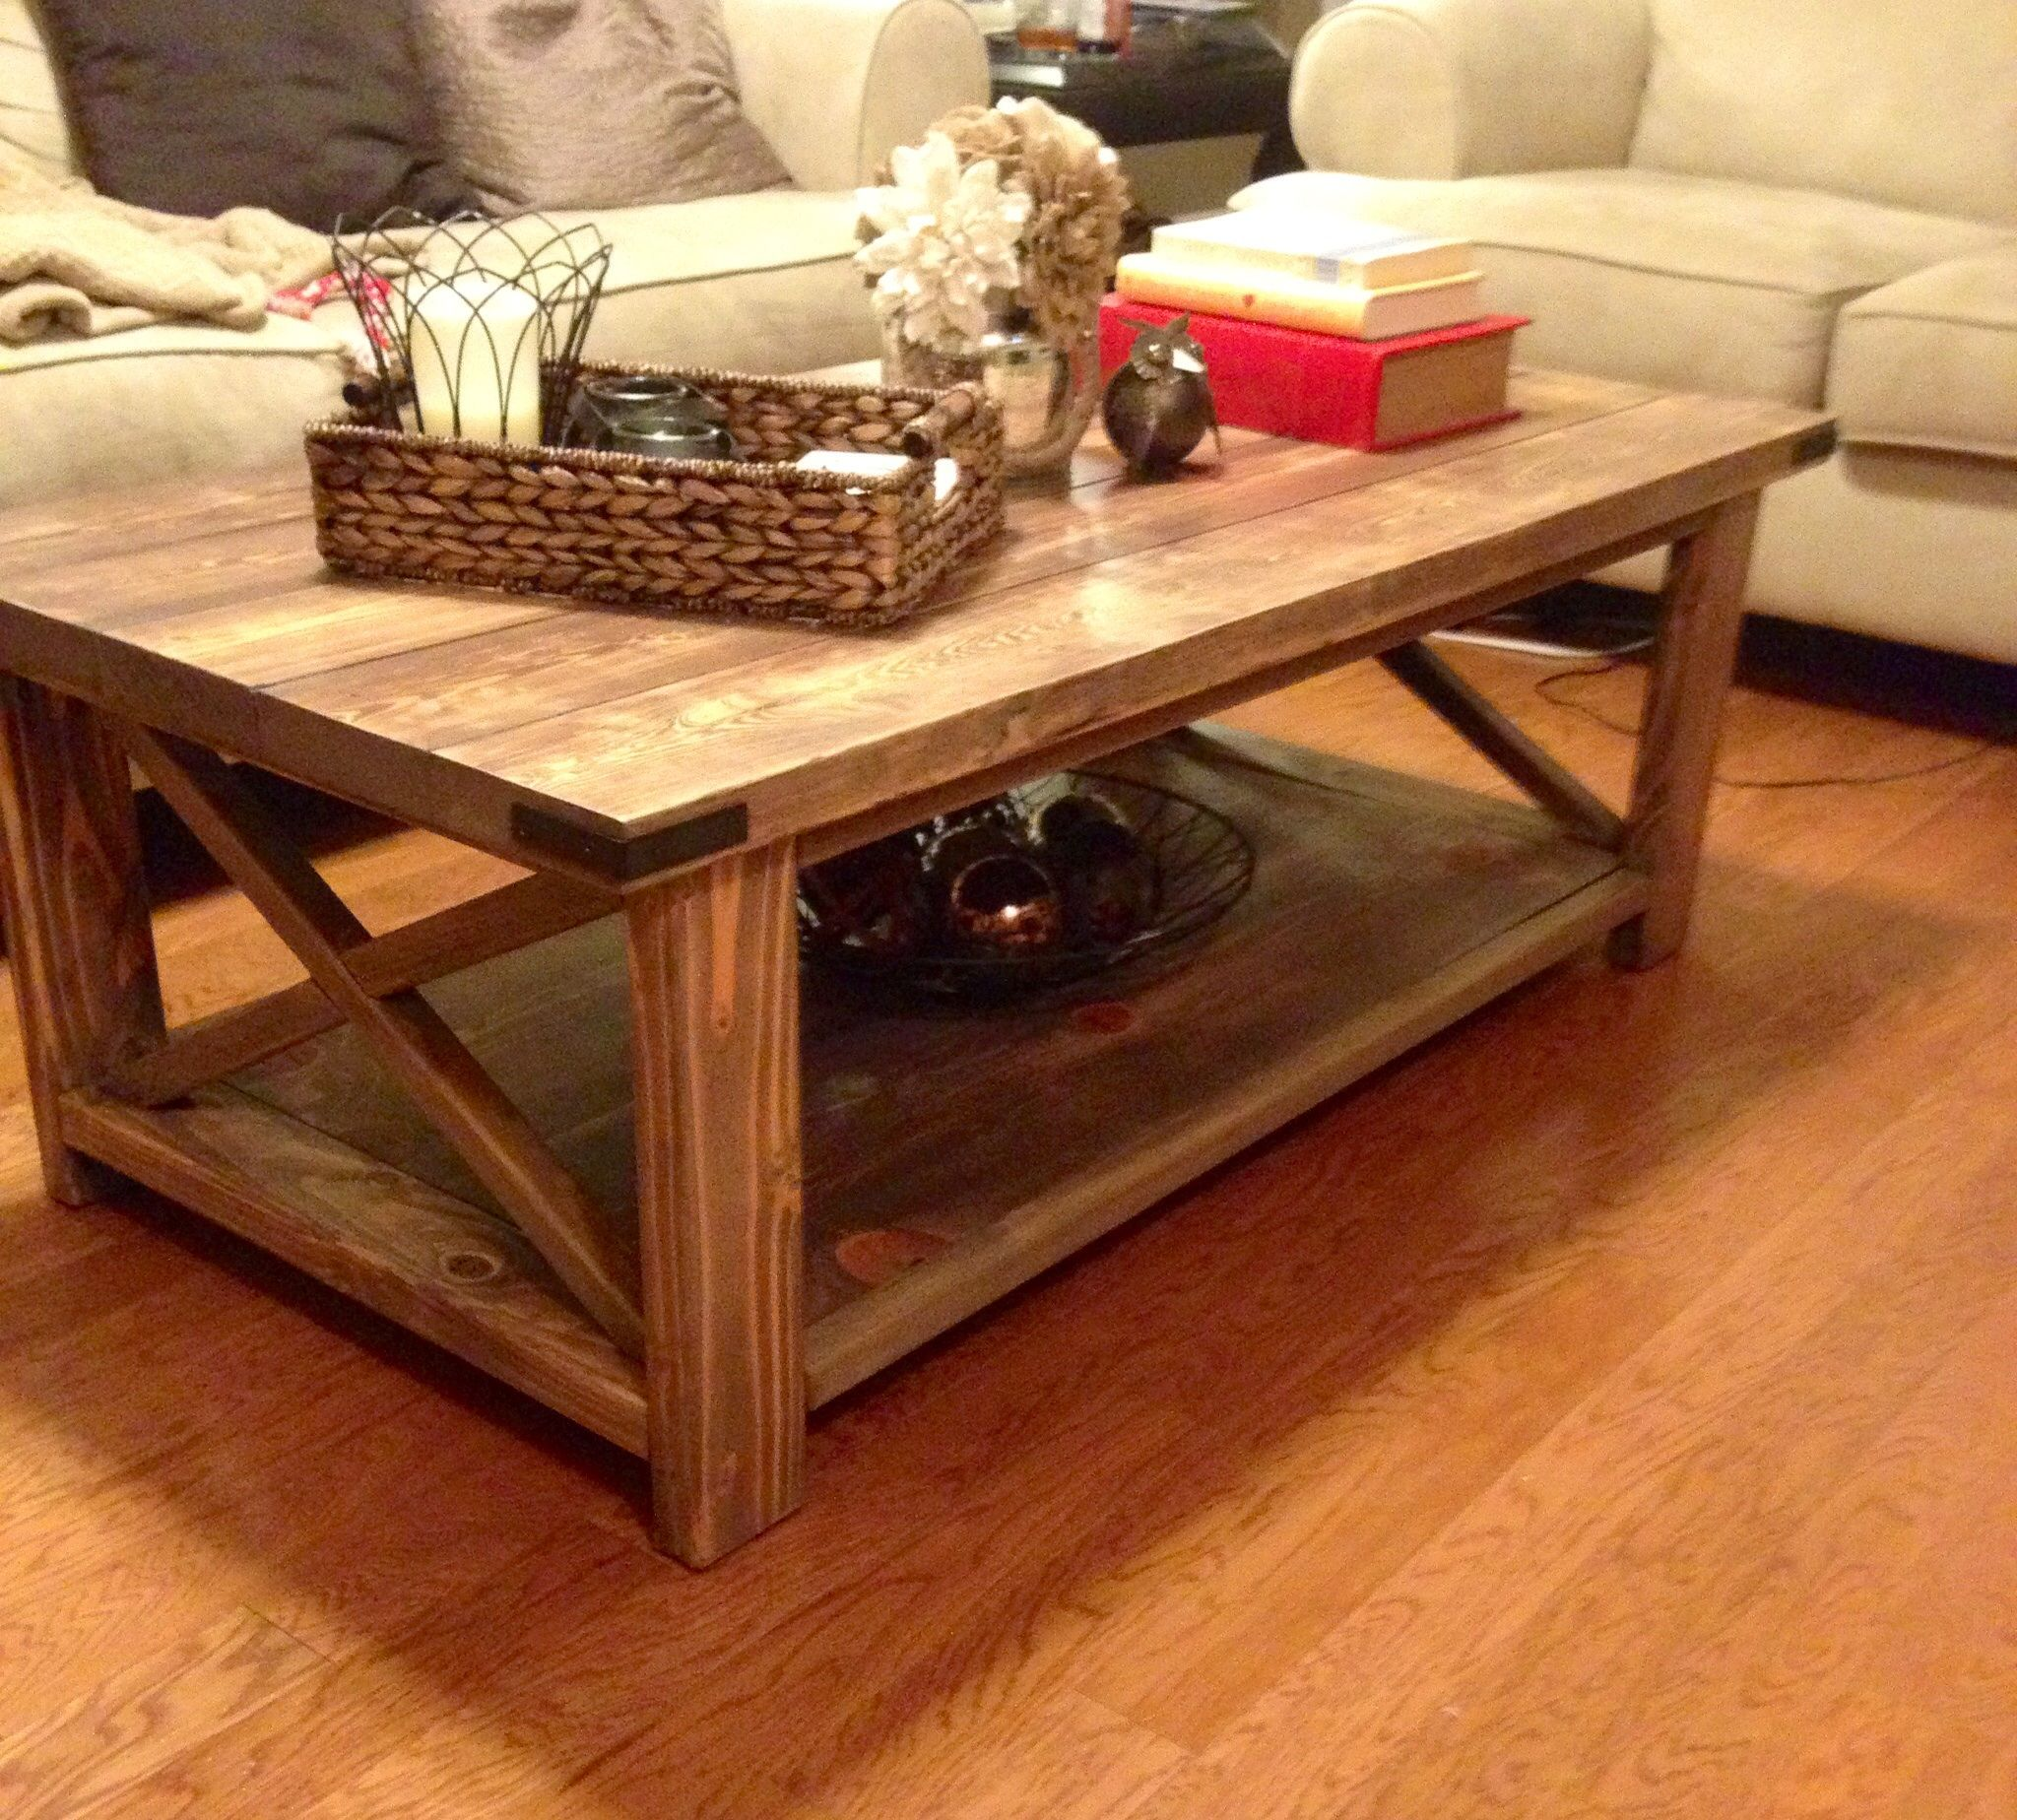 Superior Rustic X Coffee Table | Do It Yourself Home Projects From Ana White